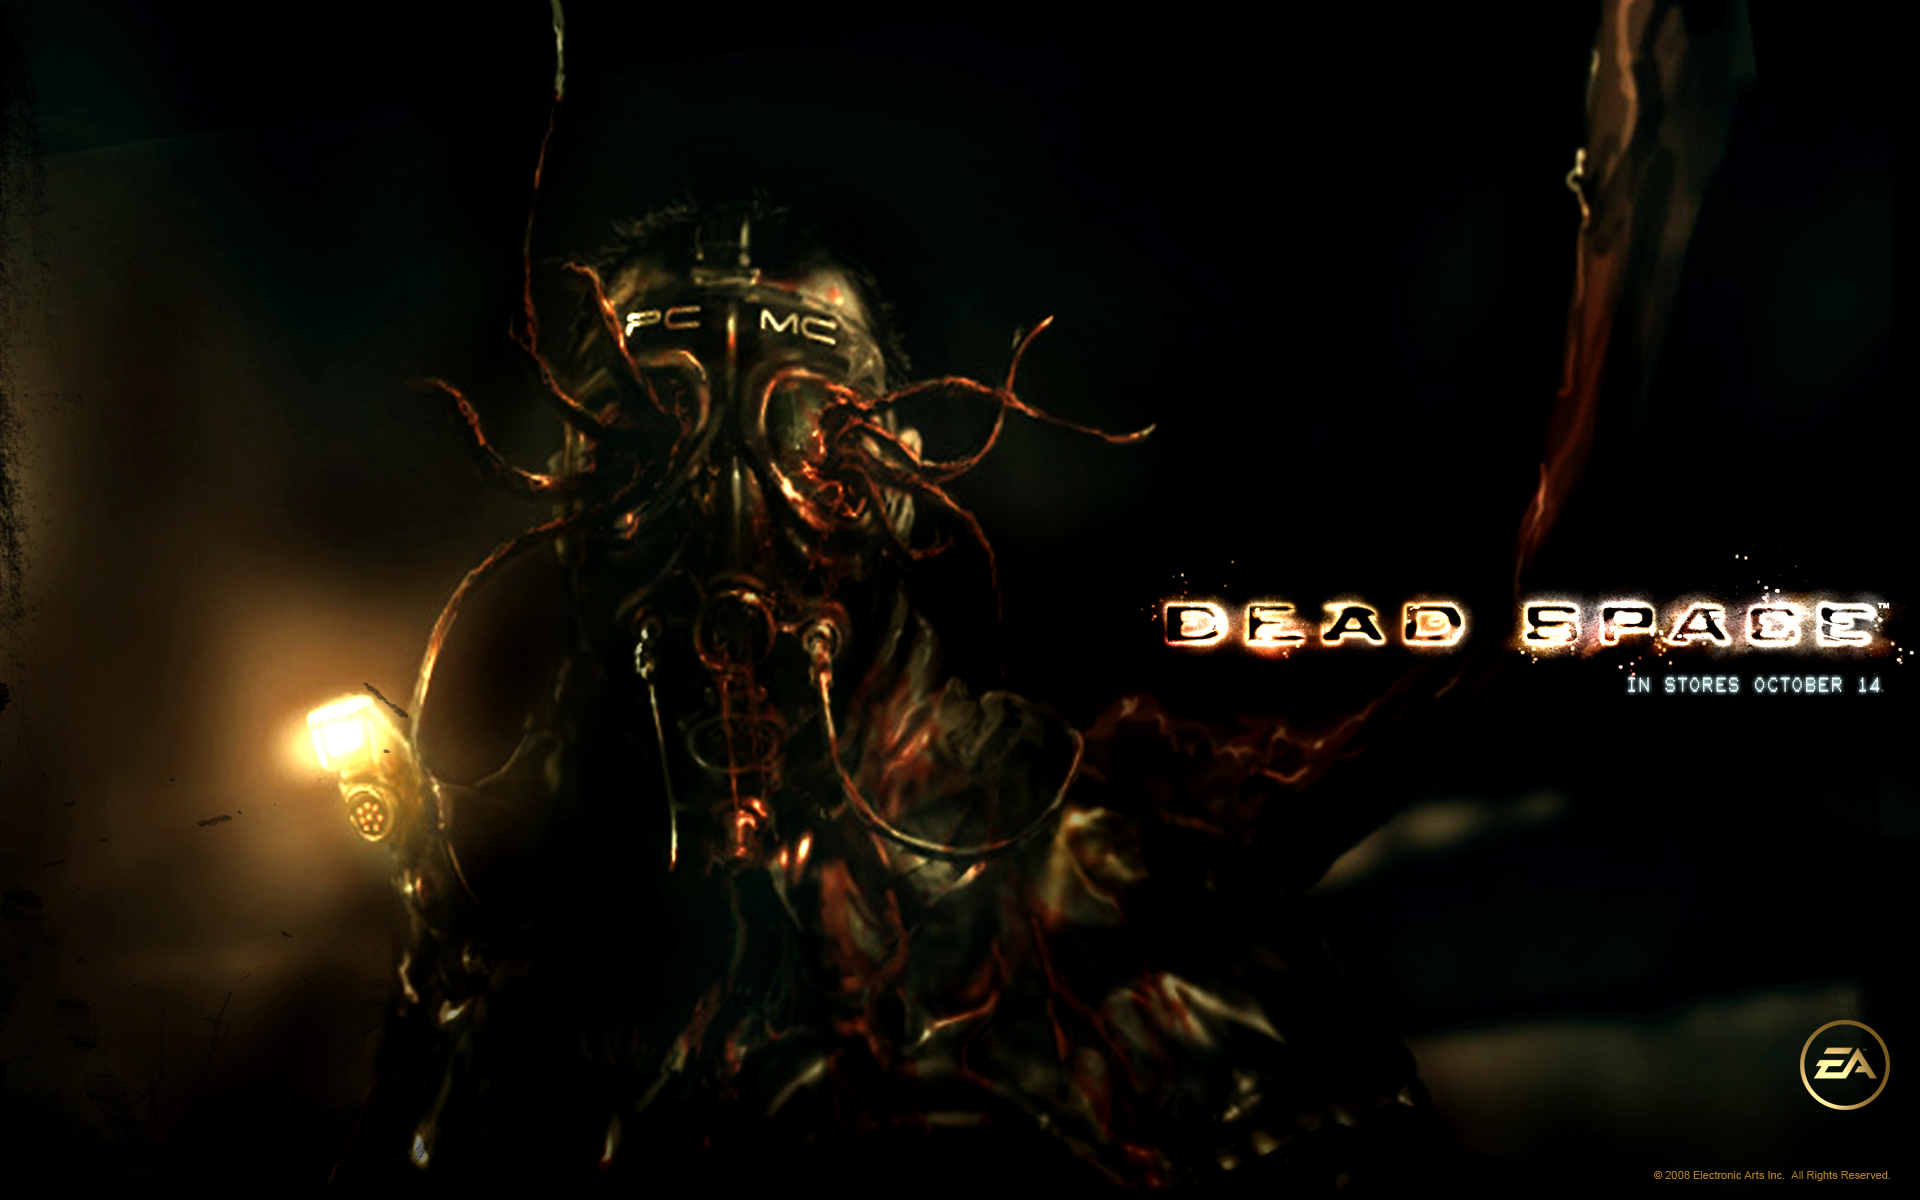 Description: Dead Space HD Wallpaper is a hi res Wallpaper for pc ...